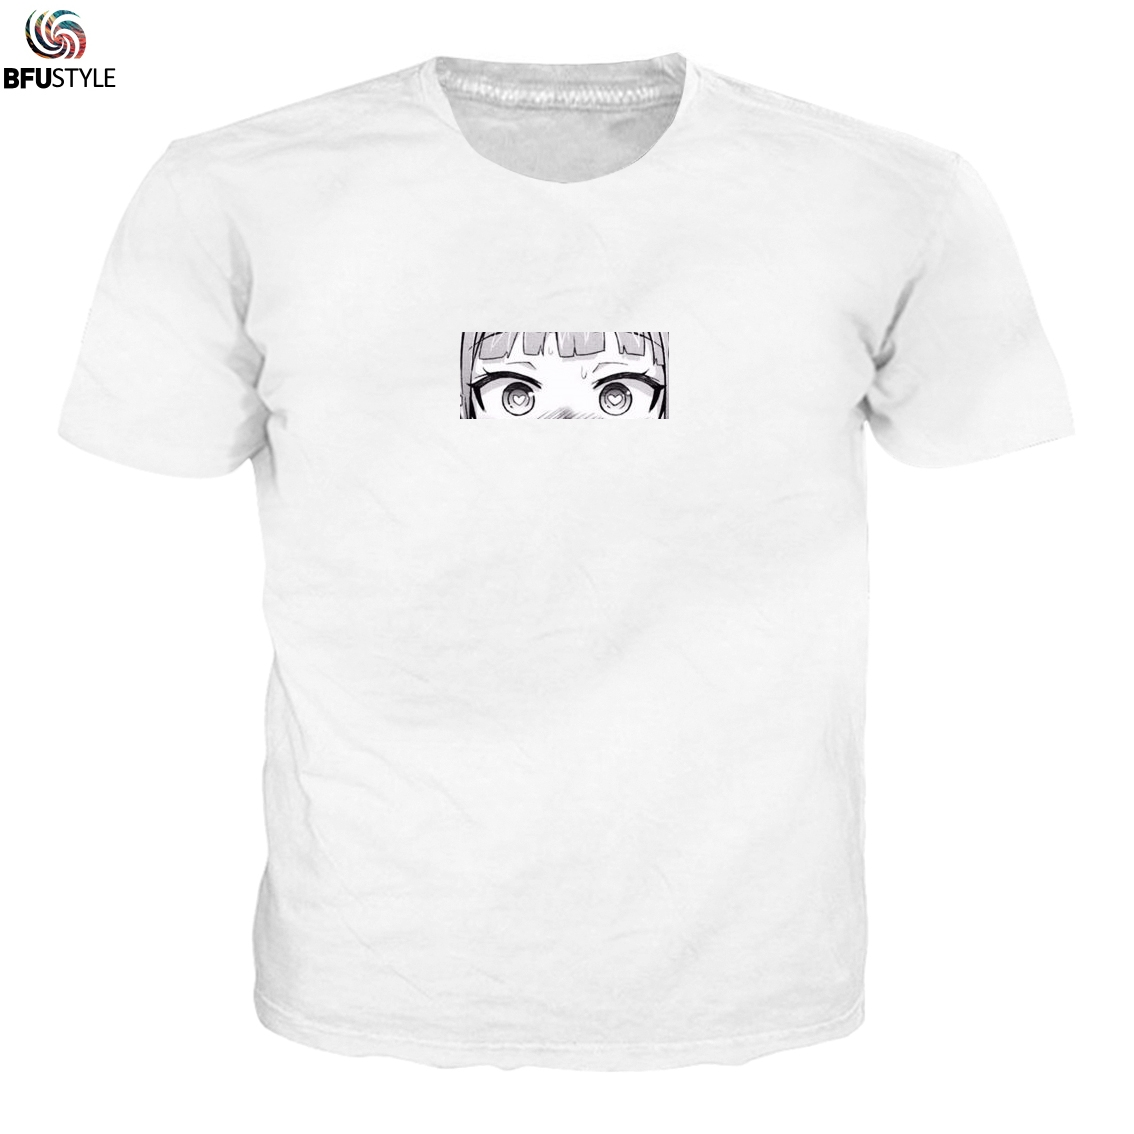 81cf9f23 Anime Print Ahegao 3D T Shirt T-shirts Men Women Short Sleeve Tee Tops  Casual Pizza Cartoon Tshirt Shy Sexy Girl Plus Size